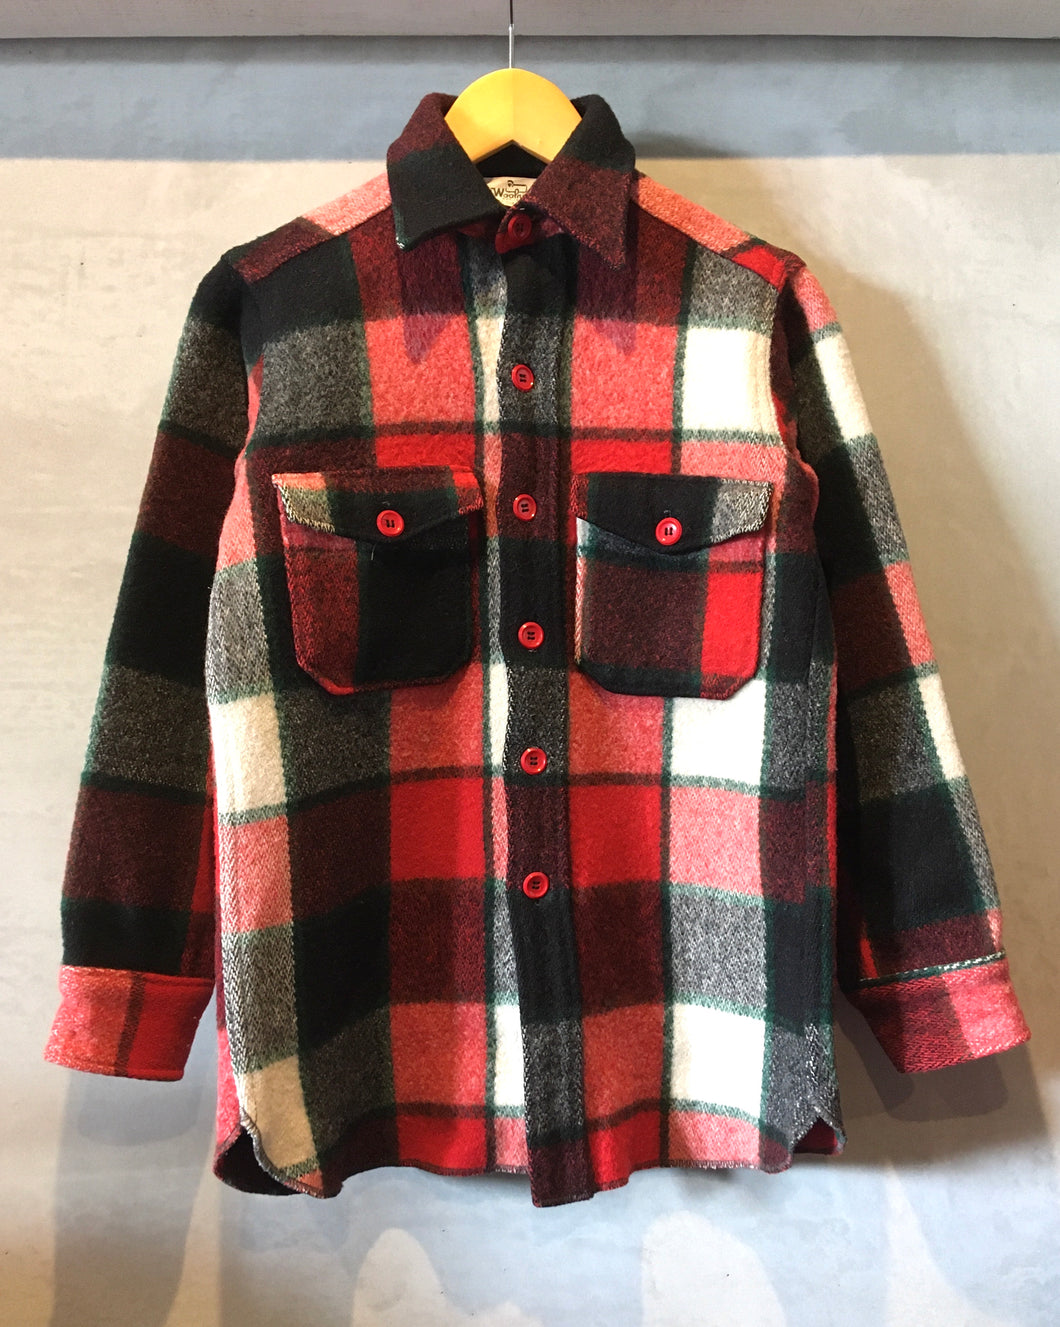 Woolrich-Wool shirt-(size S)Made in U.S.A.